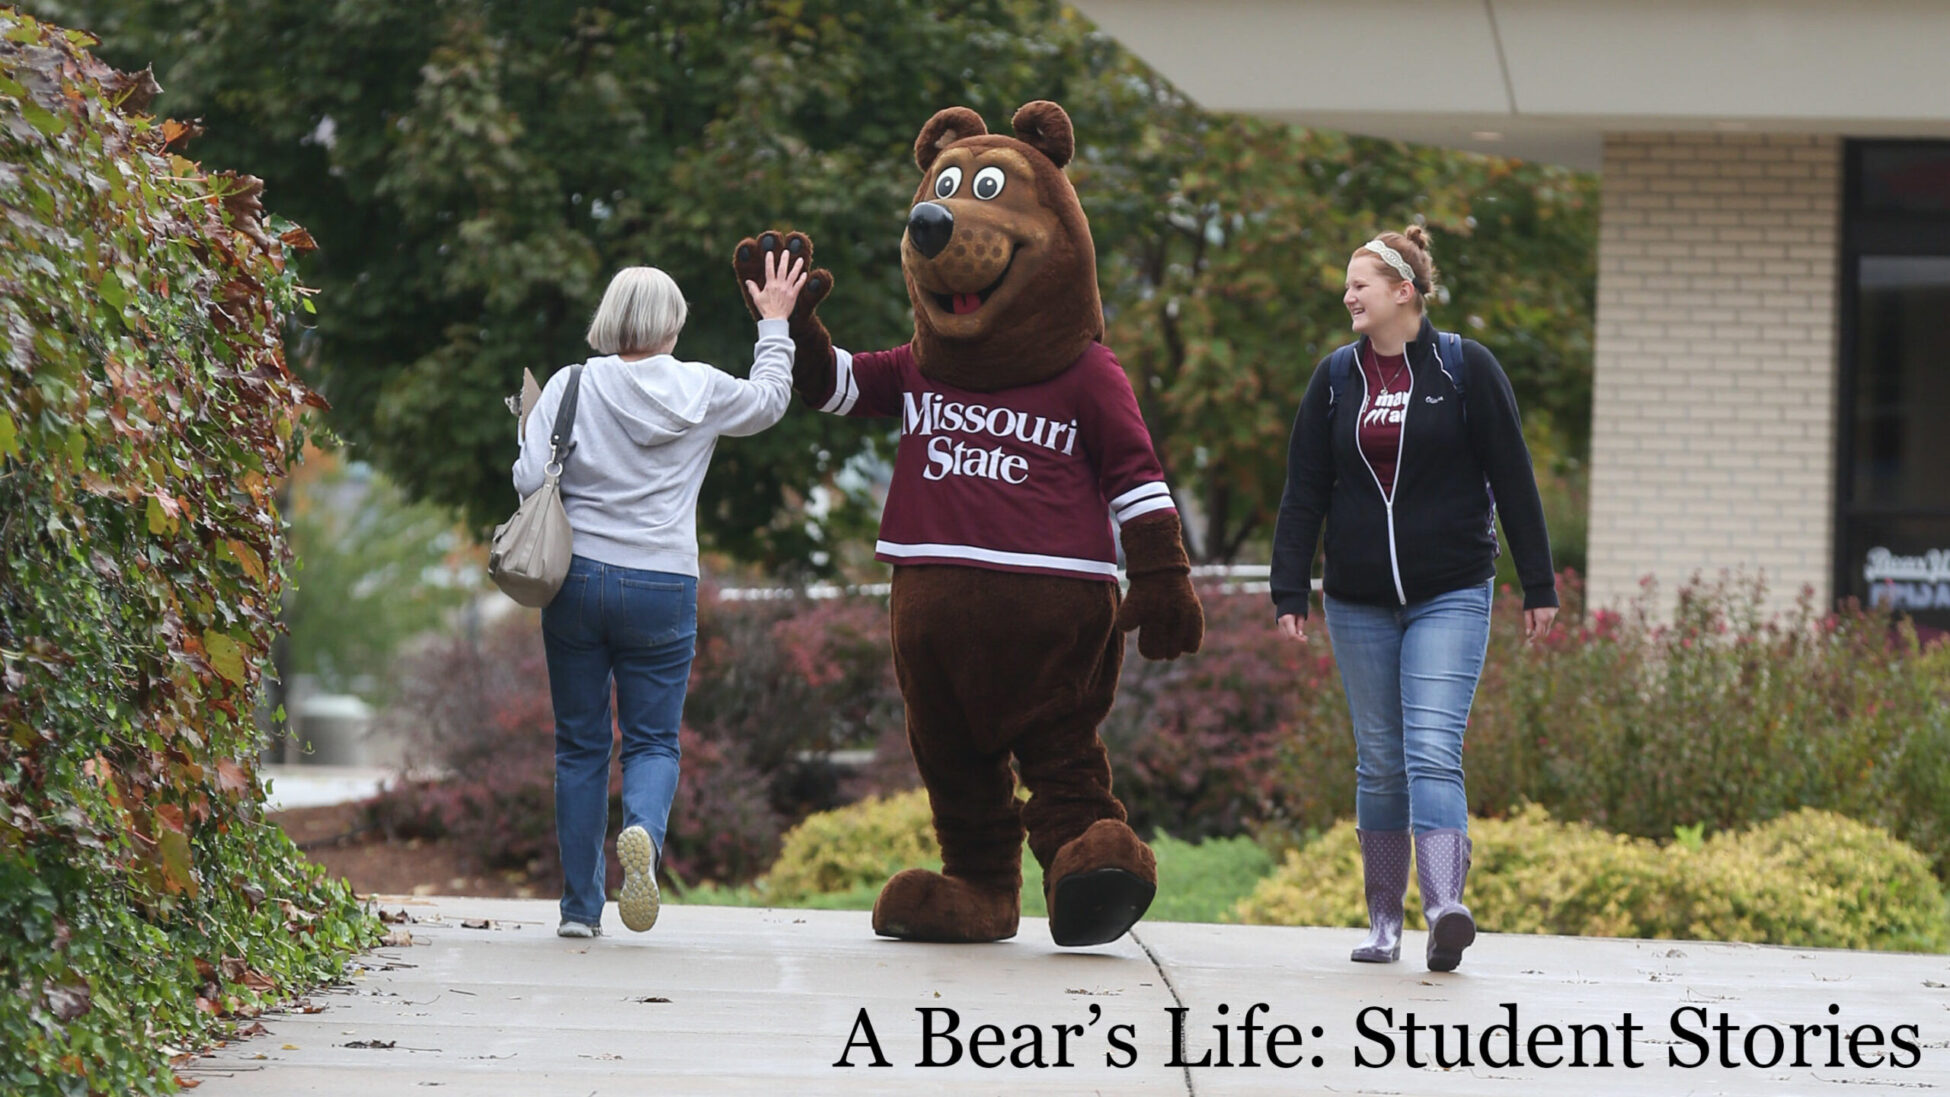 """Boomer giving someone a high five; text on the photo says 'A Bear's Life: Student Stories"""""""